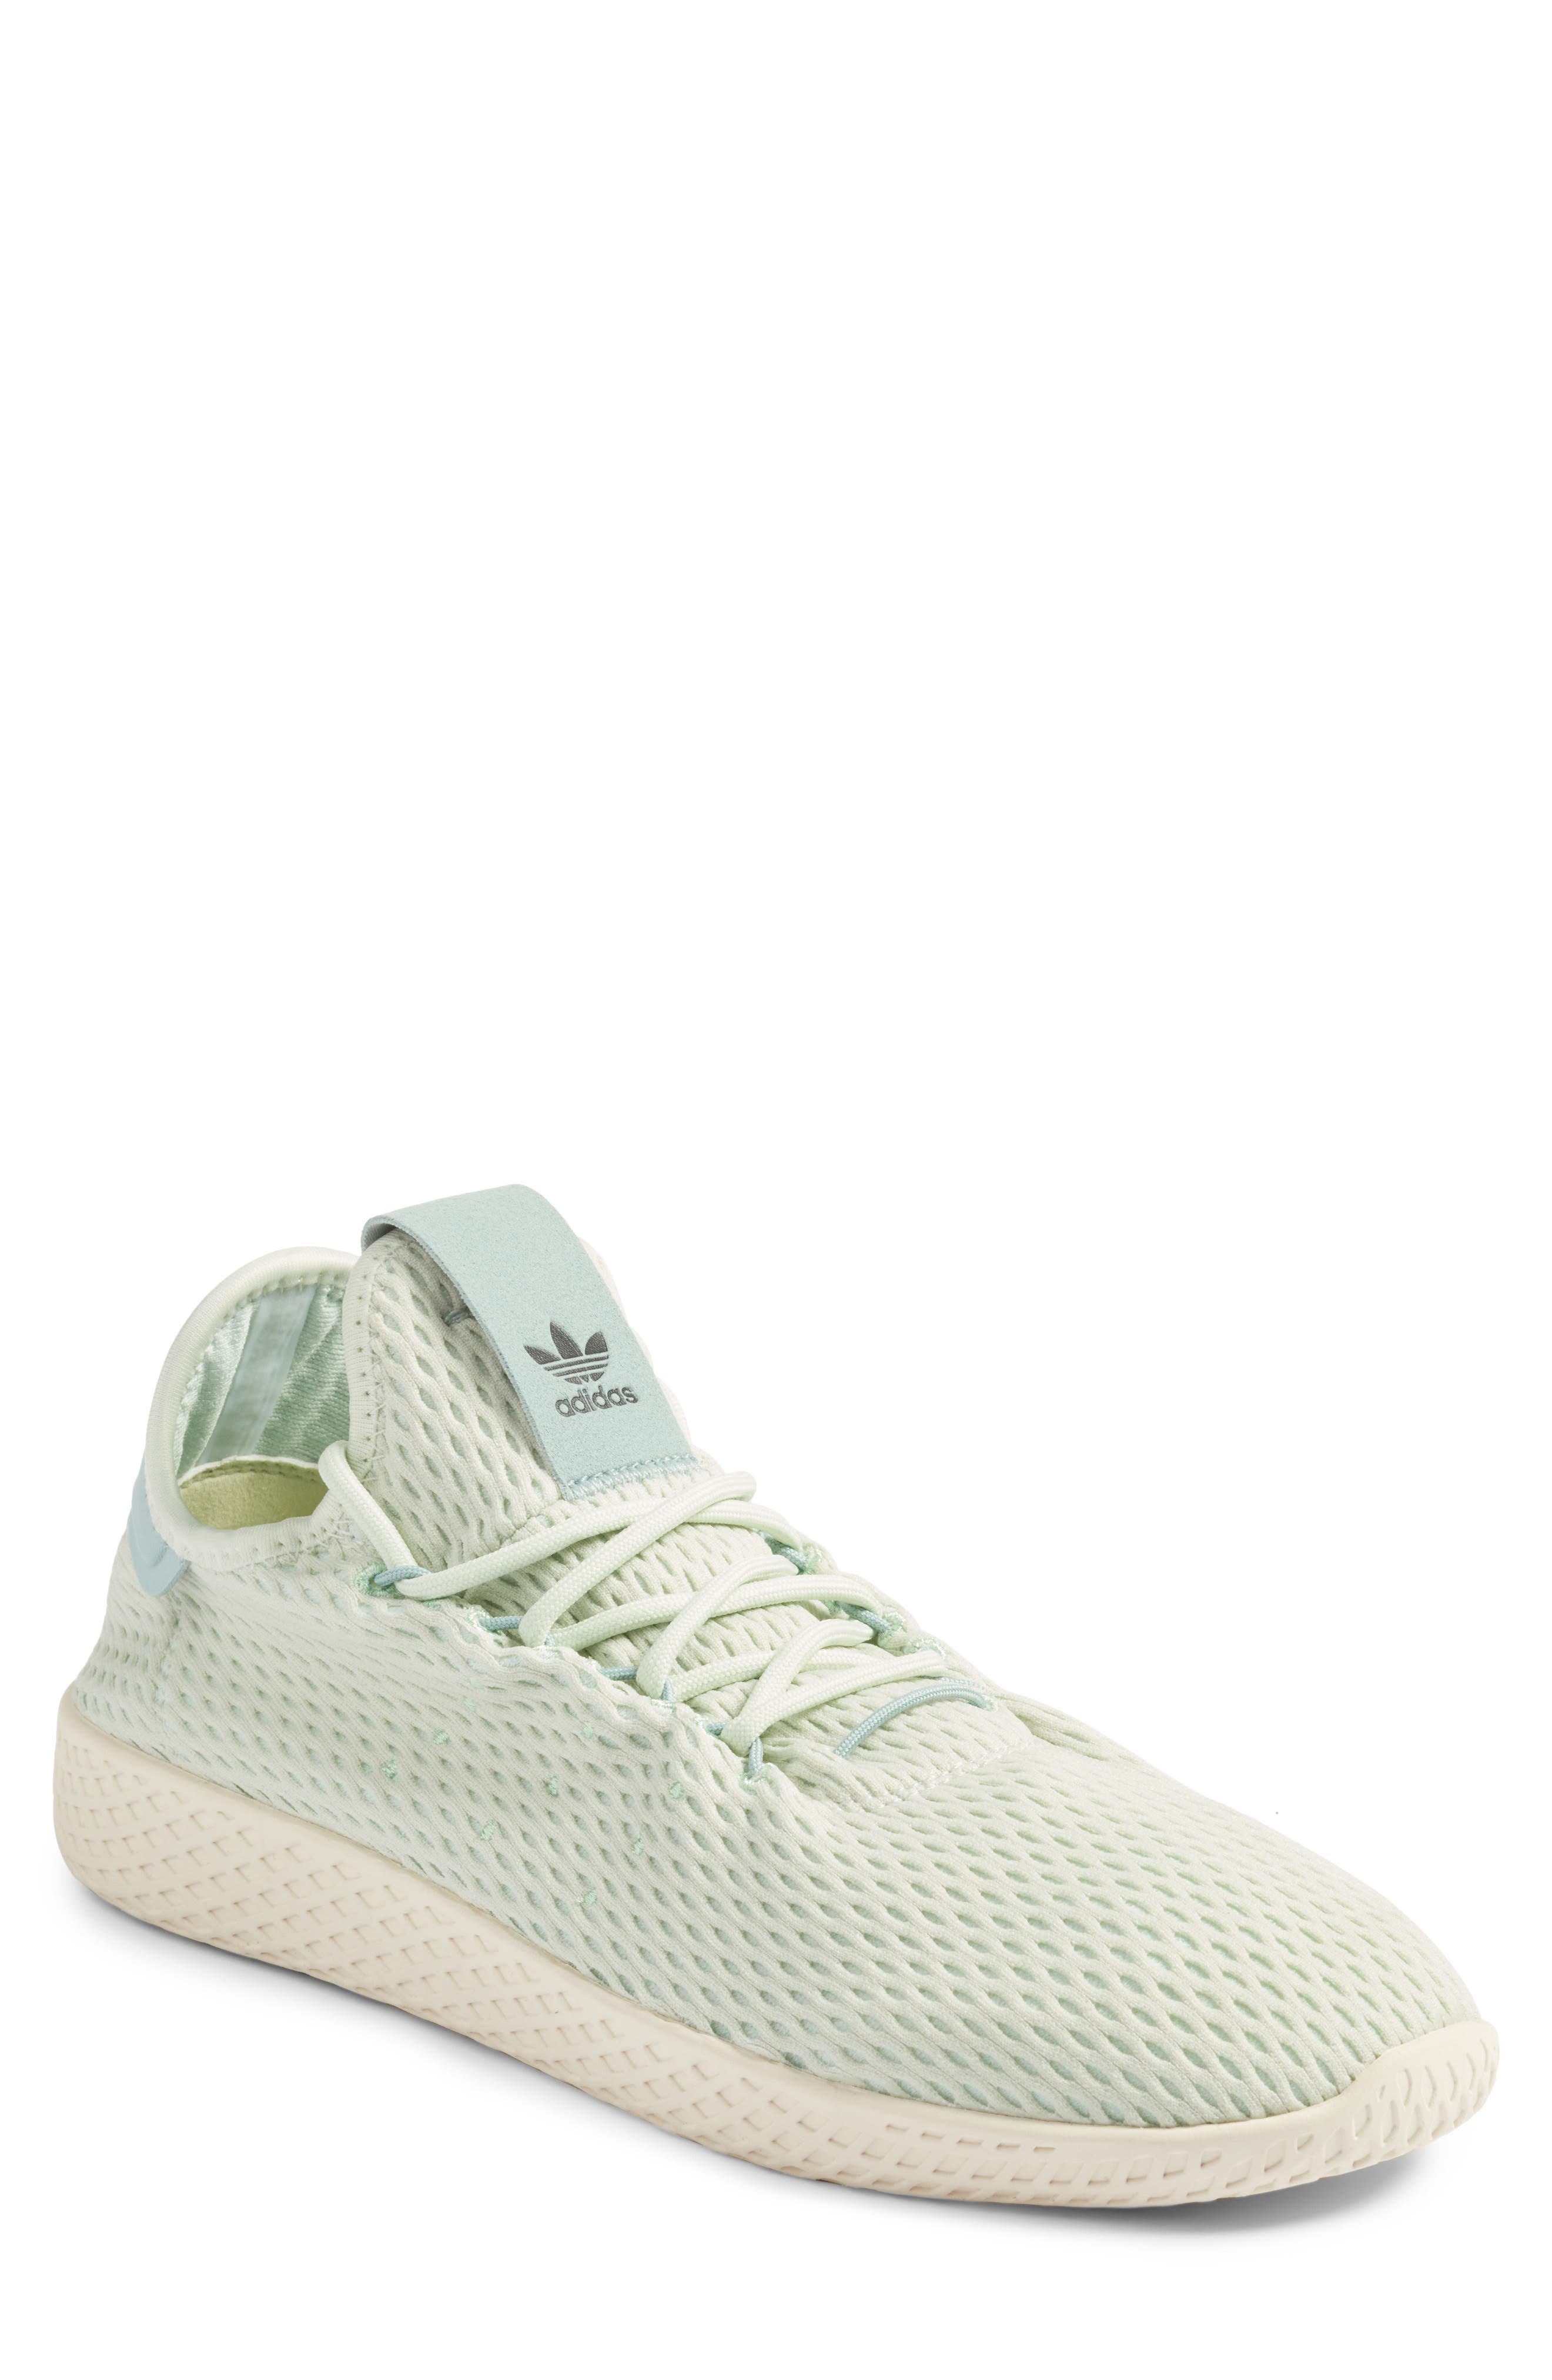 adidas Pharrell Williams Tennis Hu Sneaker (Women)